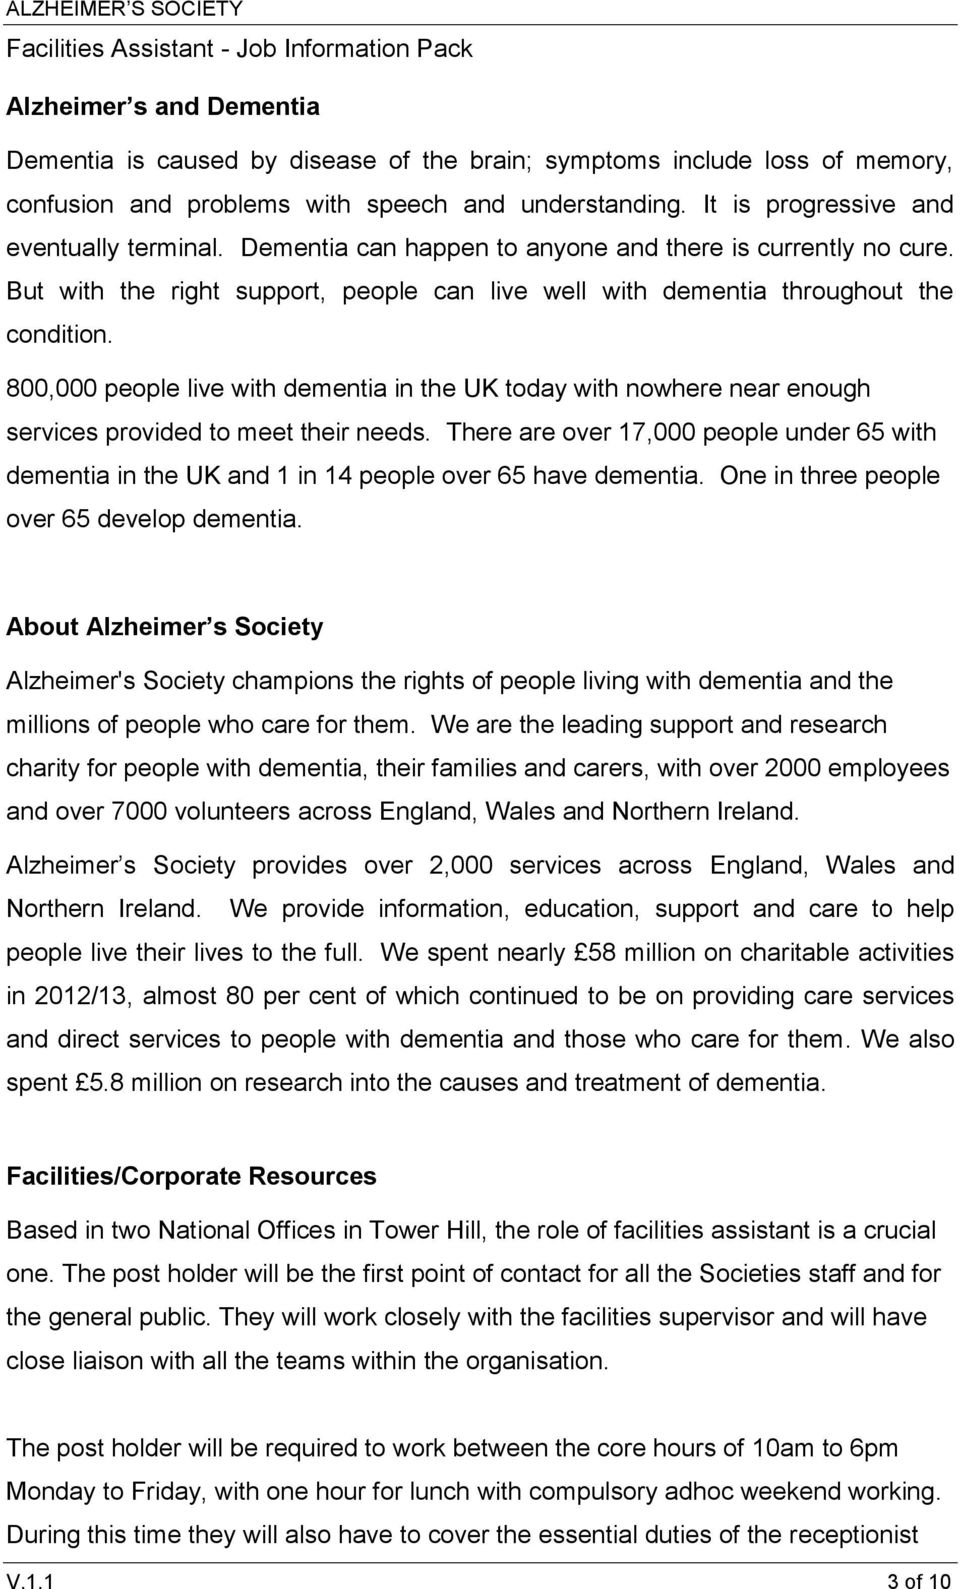 800,000 people live with dementia in the UK today with nowhere near enough services provided to meet their needs.